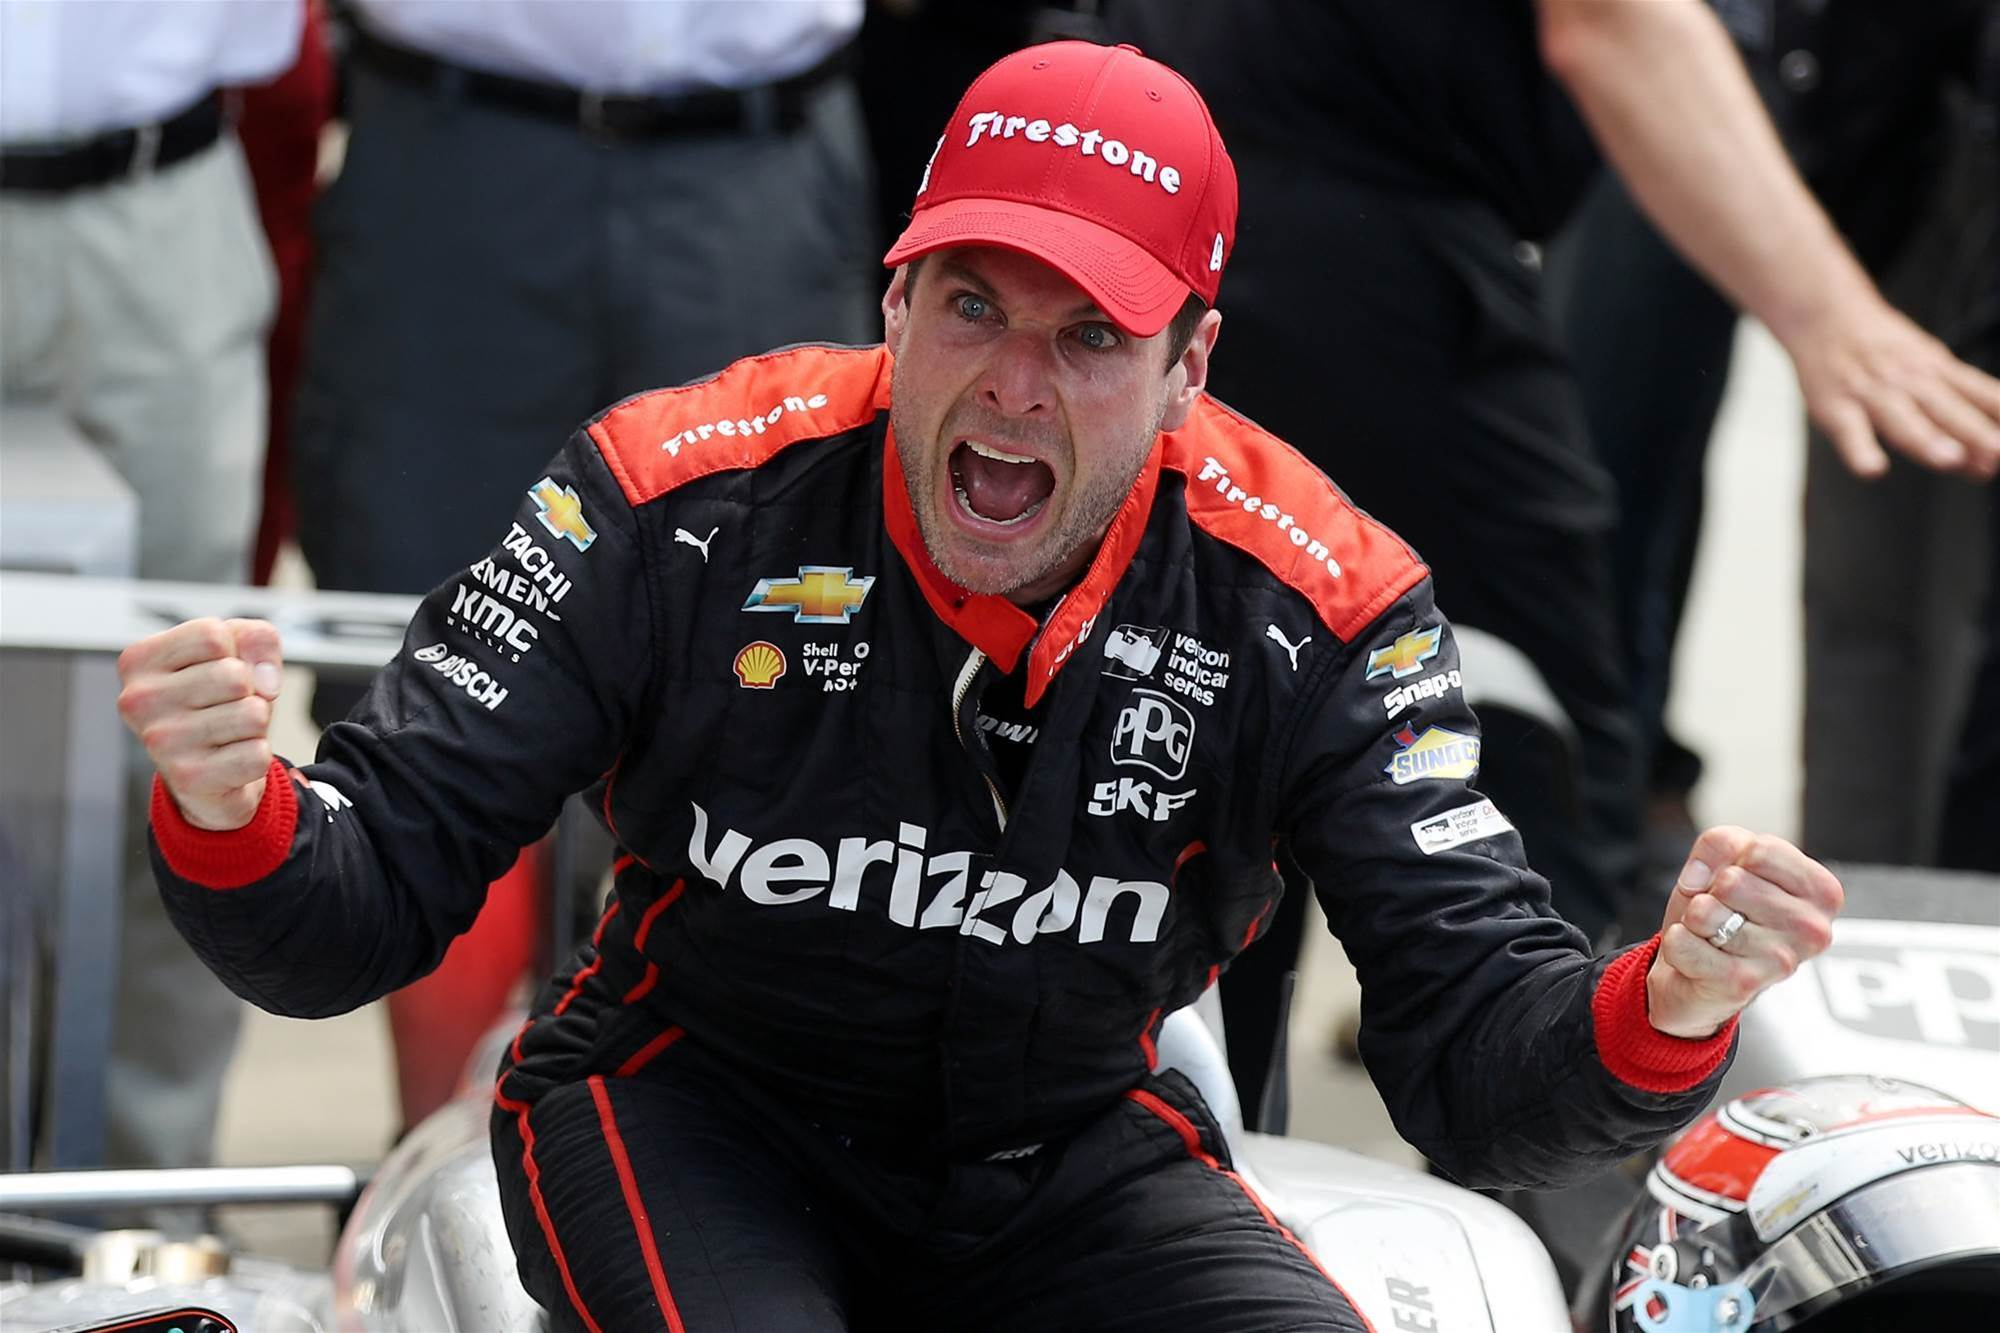 Pic gallery: Will Power's Indy 500 victory